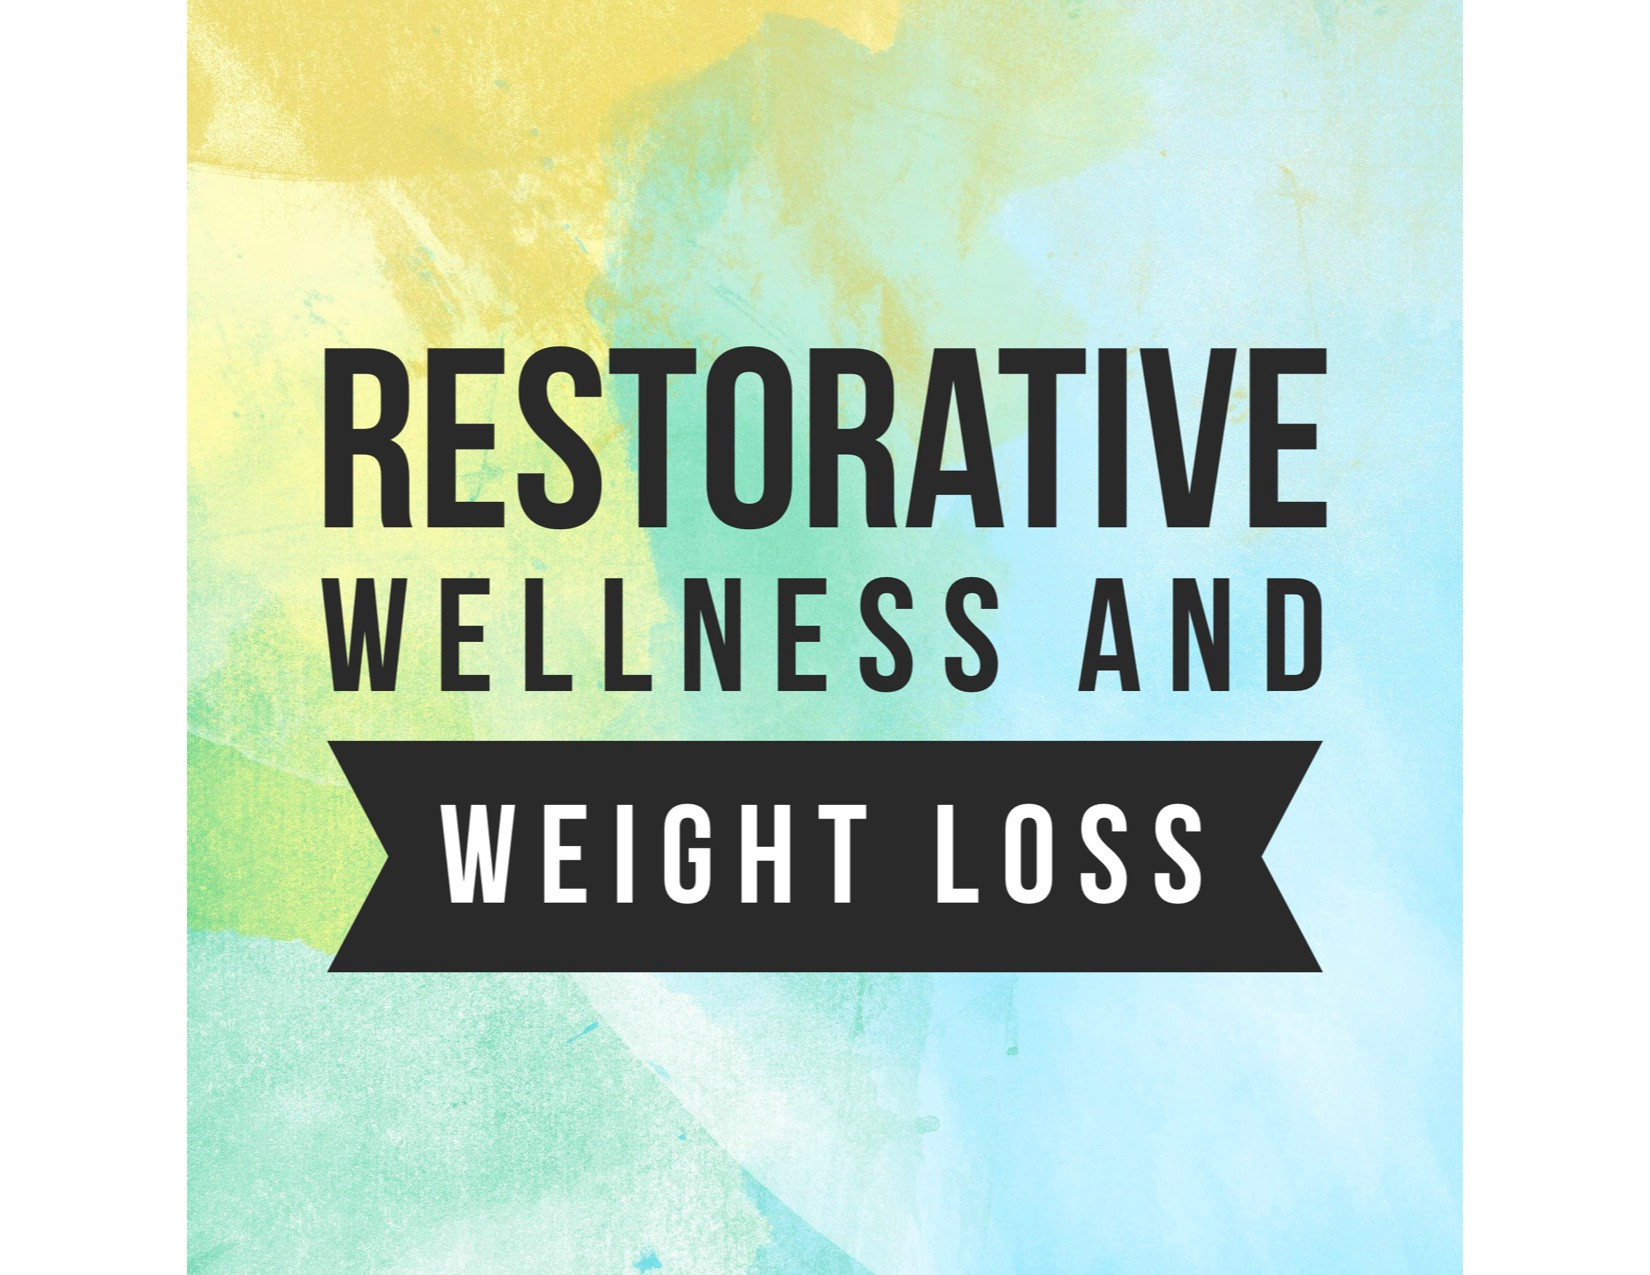 Wellness and Weight Loss Consultation